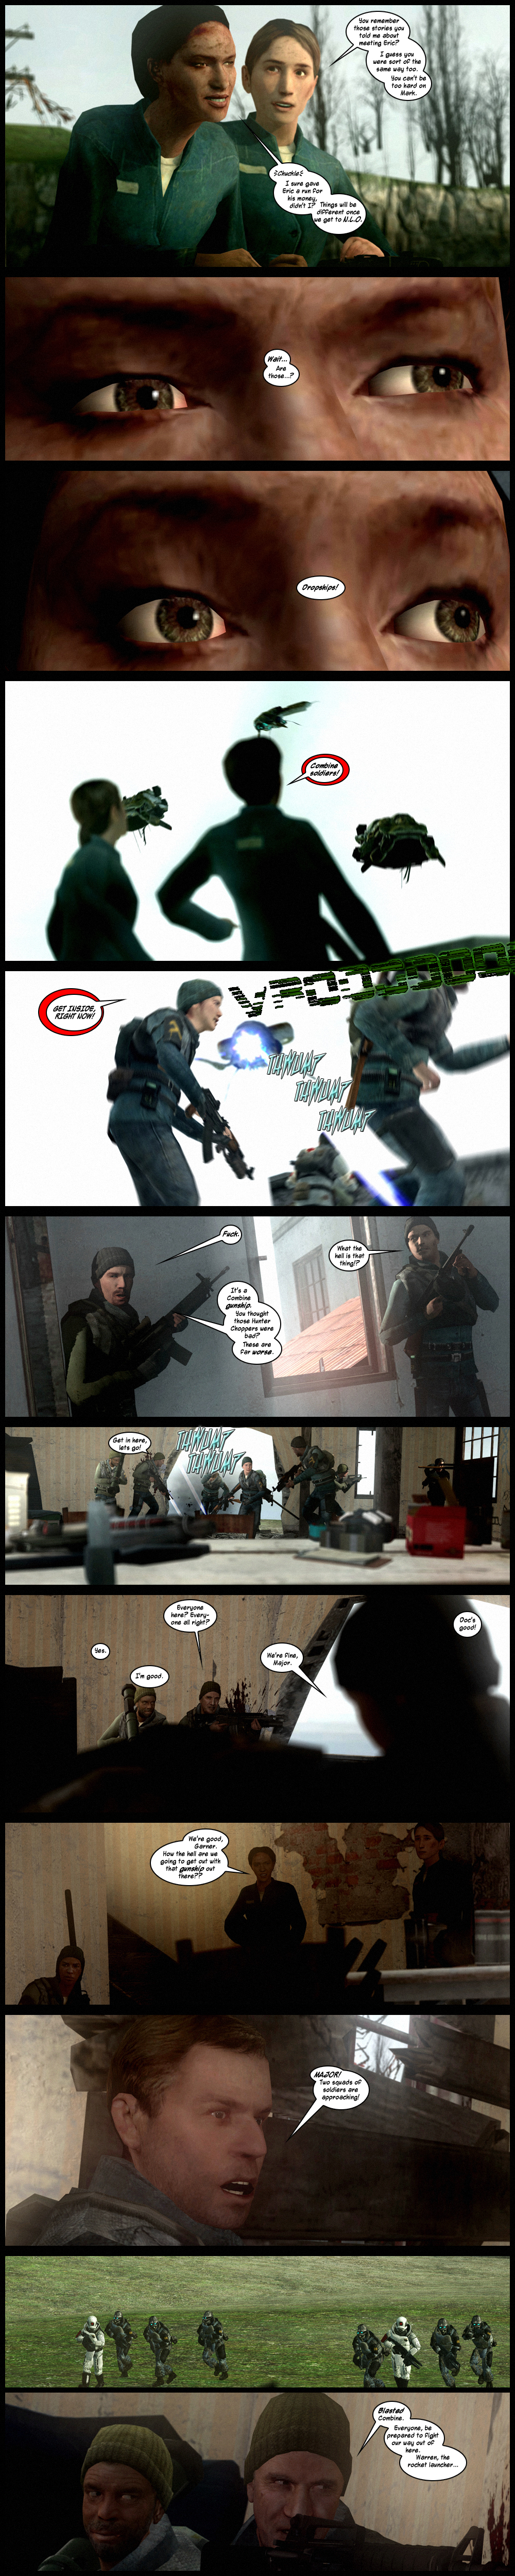 Beyond Borders Episode V Page 8